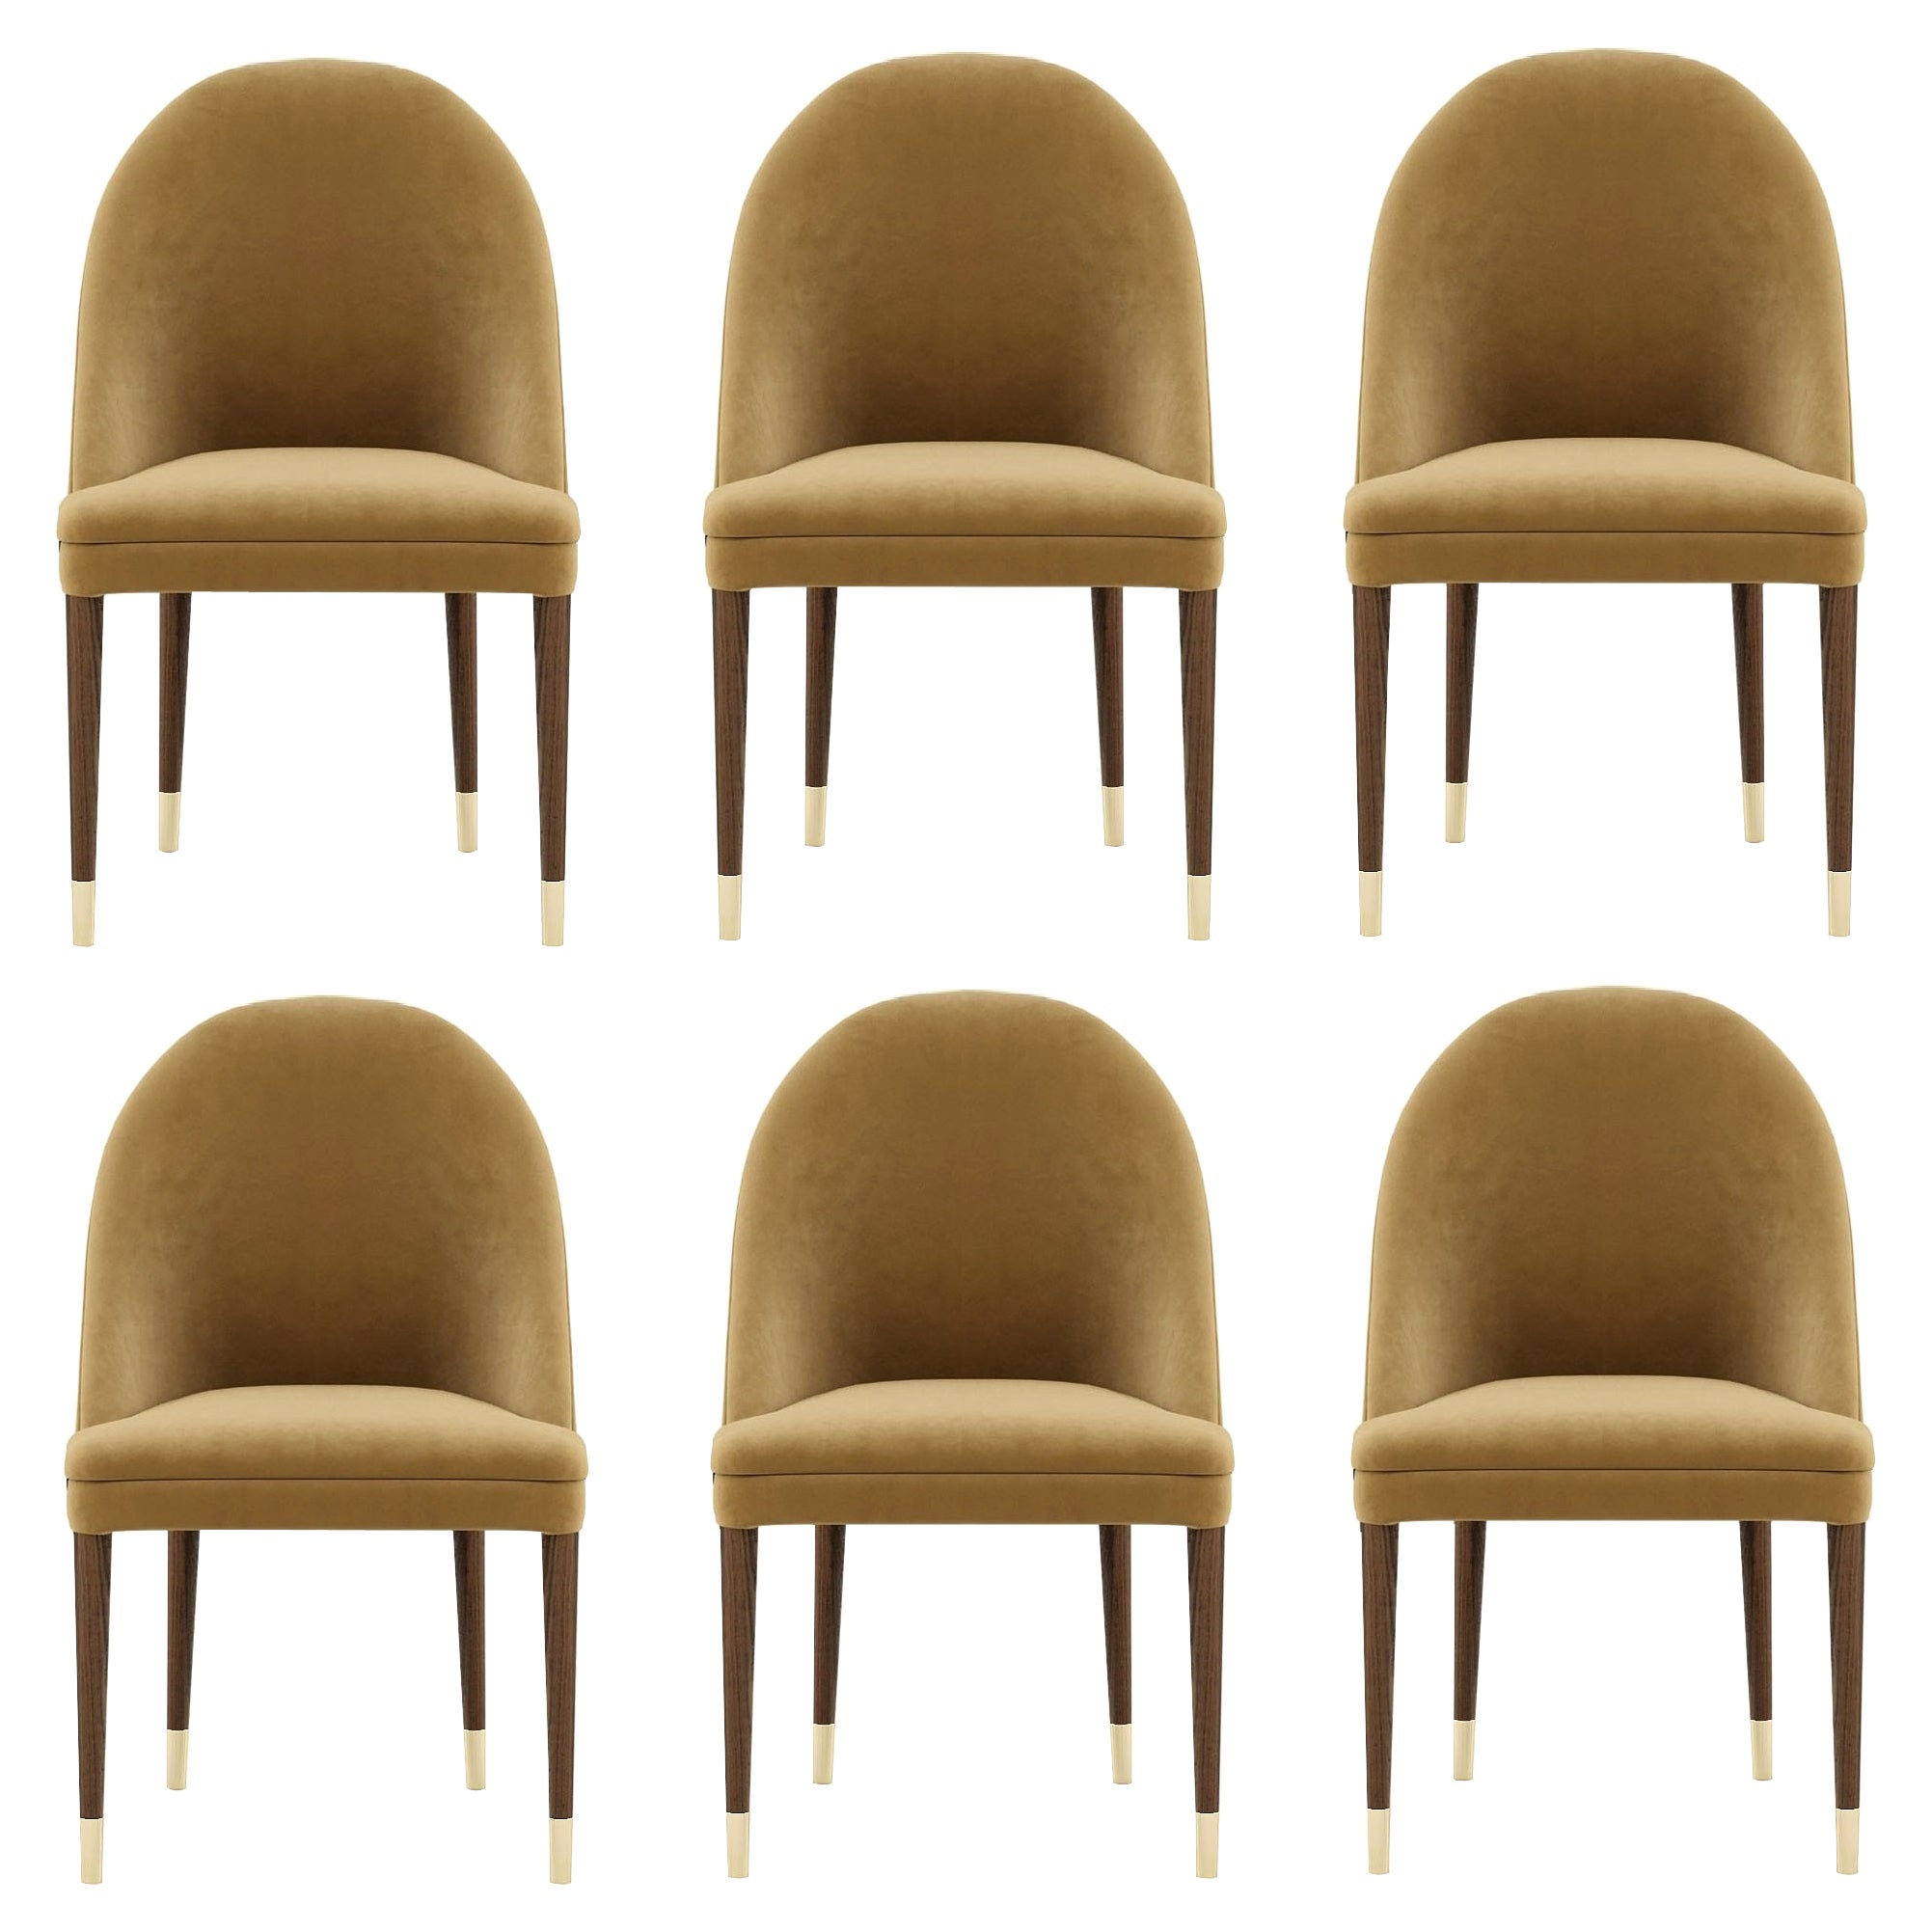 Contemporary Dining Chairs in Camel Velvet, Set of 6